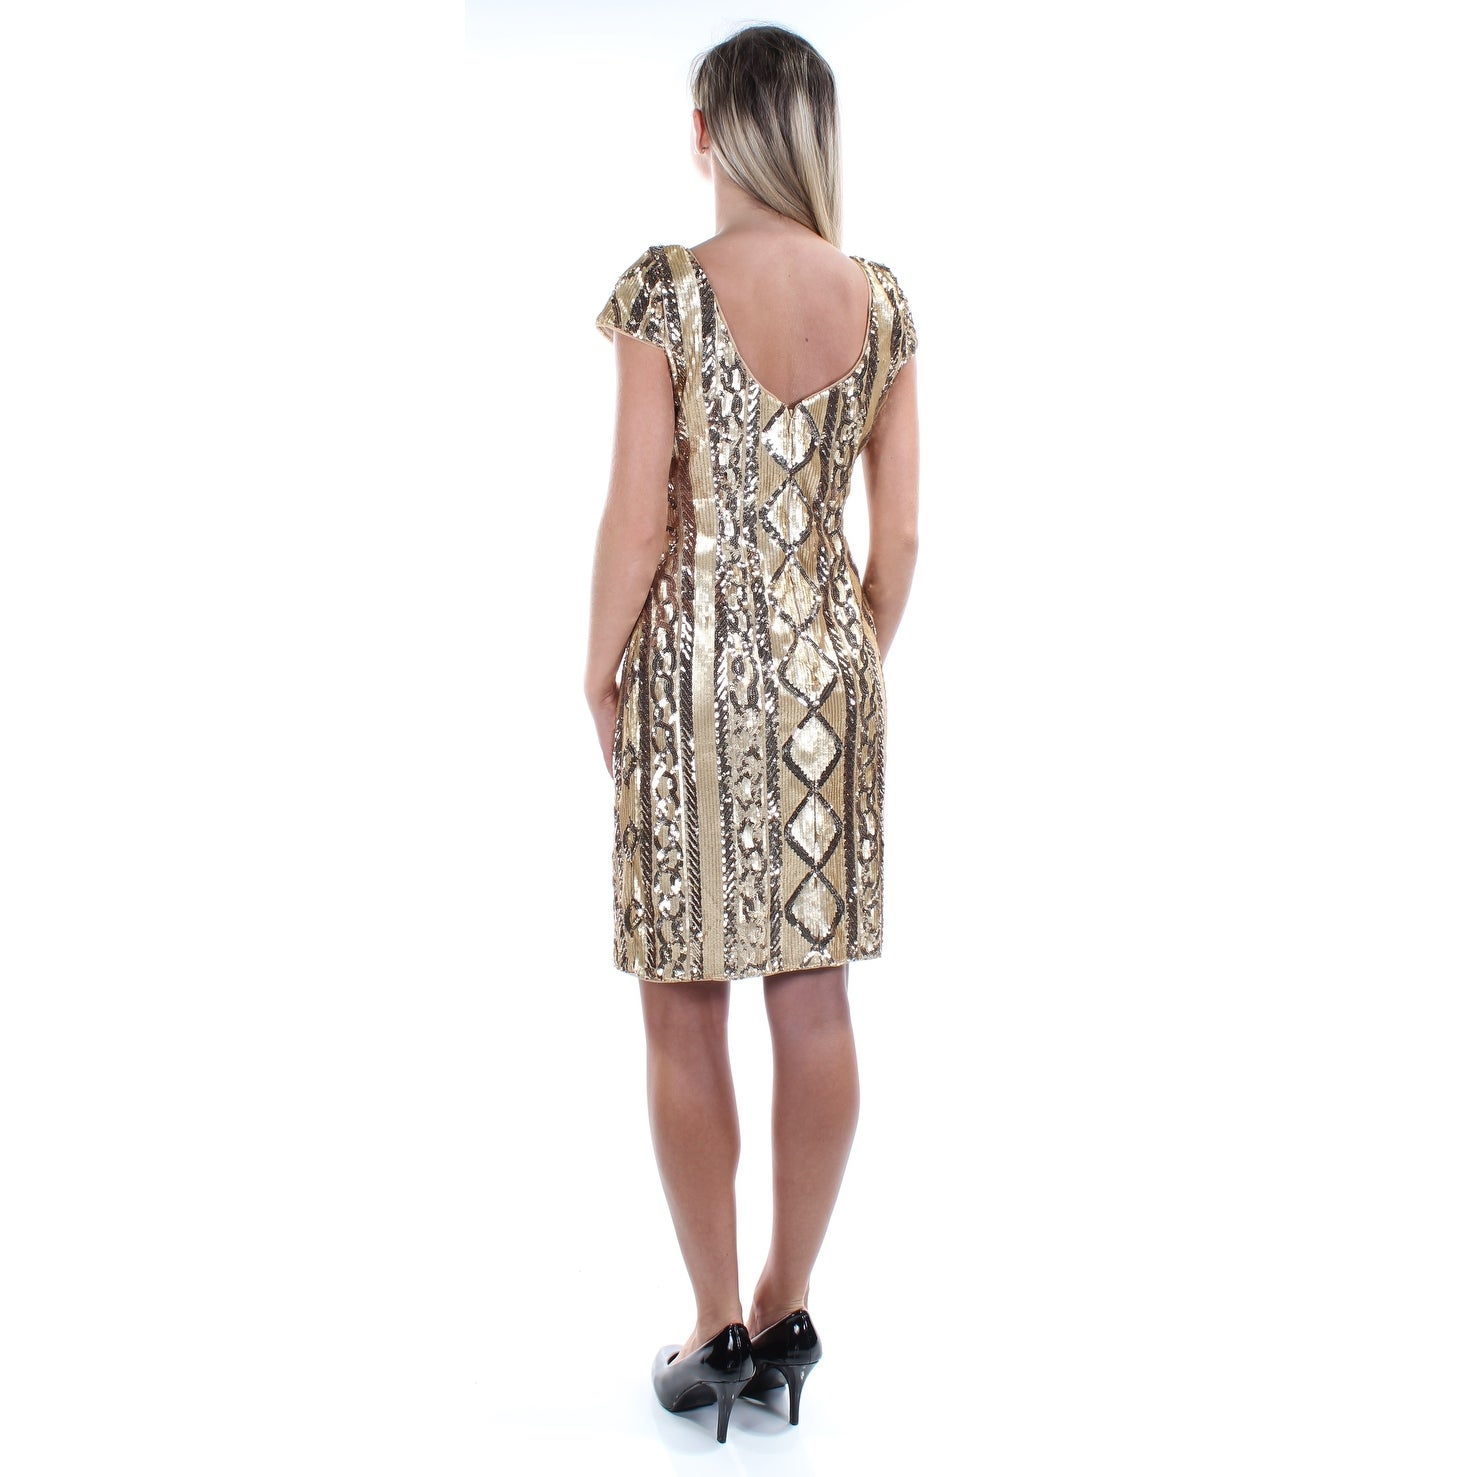 343aecc667b Shop ADRIANNA PAPELL Womens Gold Sequined Cap Sleeve Jewel Neck Above The  Knee Sheath Party Dress Size  2 - Free Shipping On Orders Over  45 -  Overstock - ...